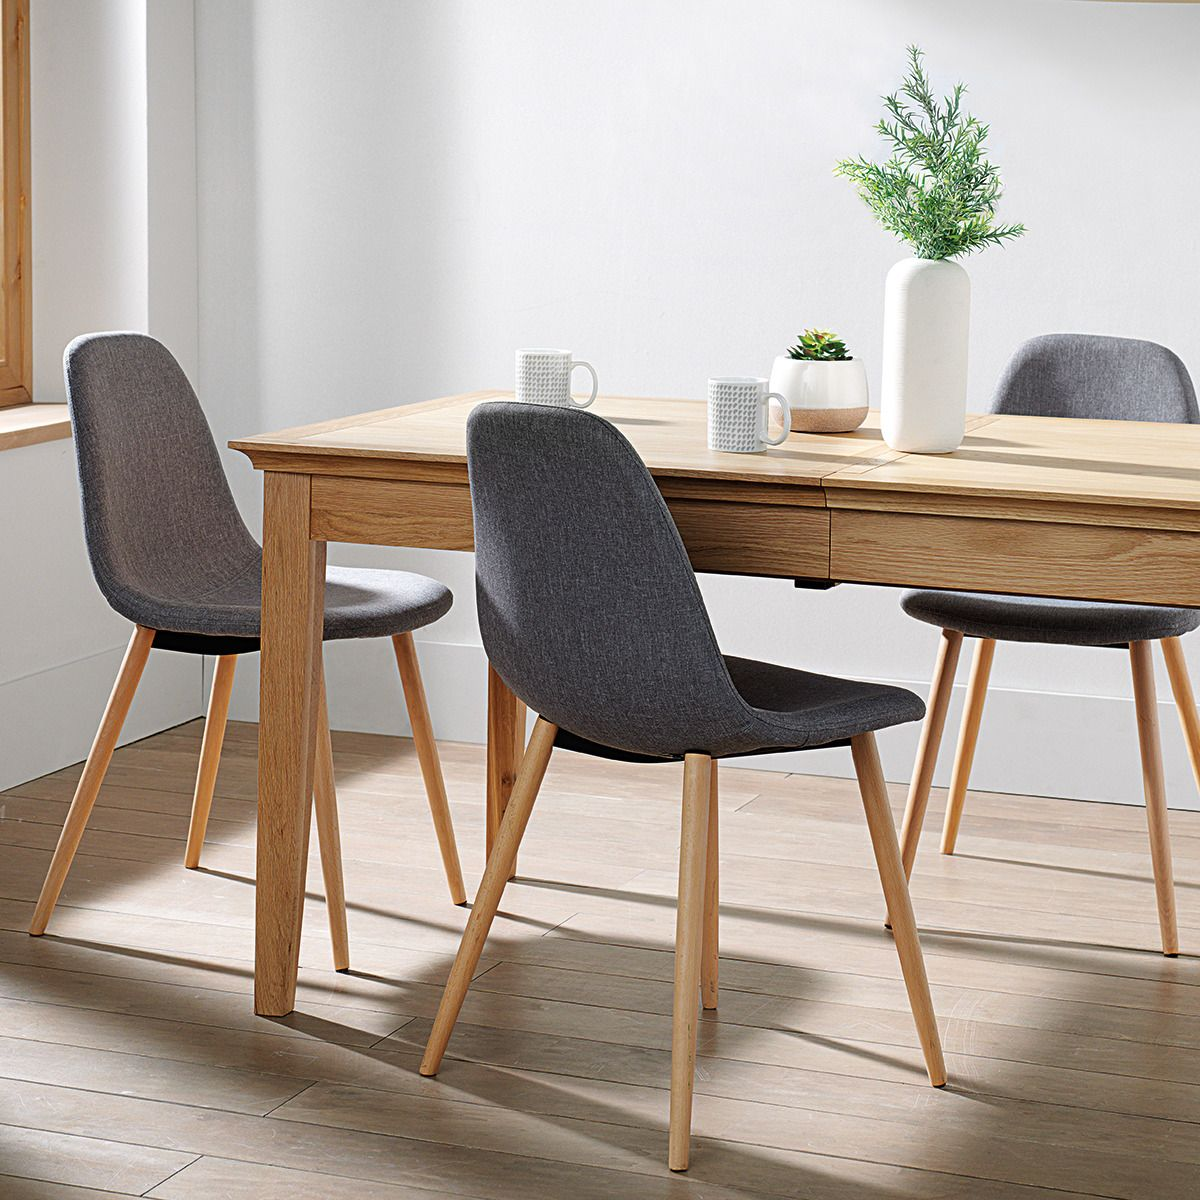 Silla de comedor tapizada Wendy Room | MUEBLES PLAYA | Dining chairs ...